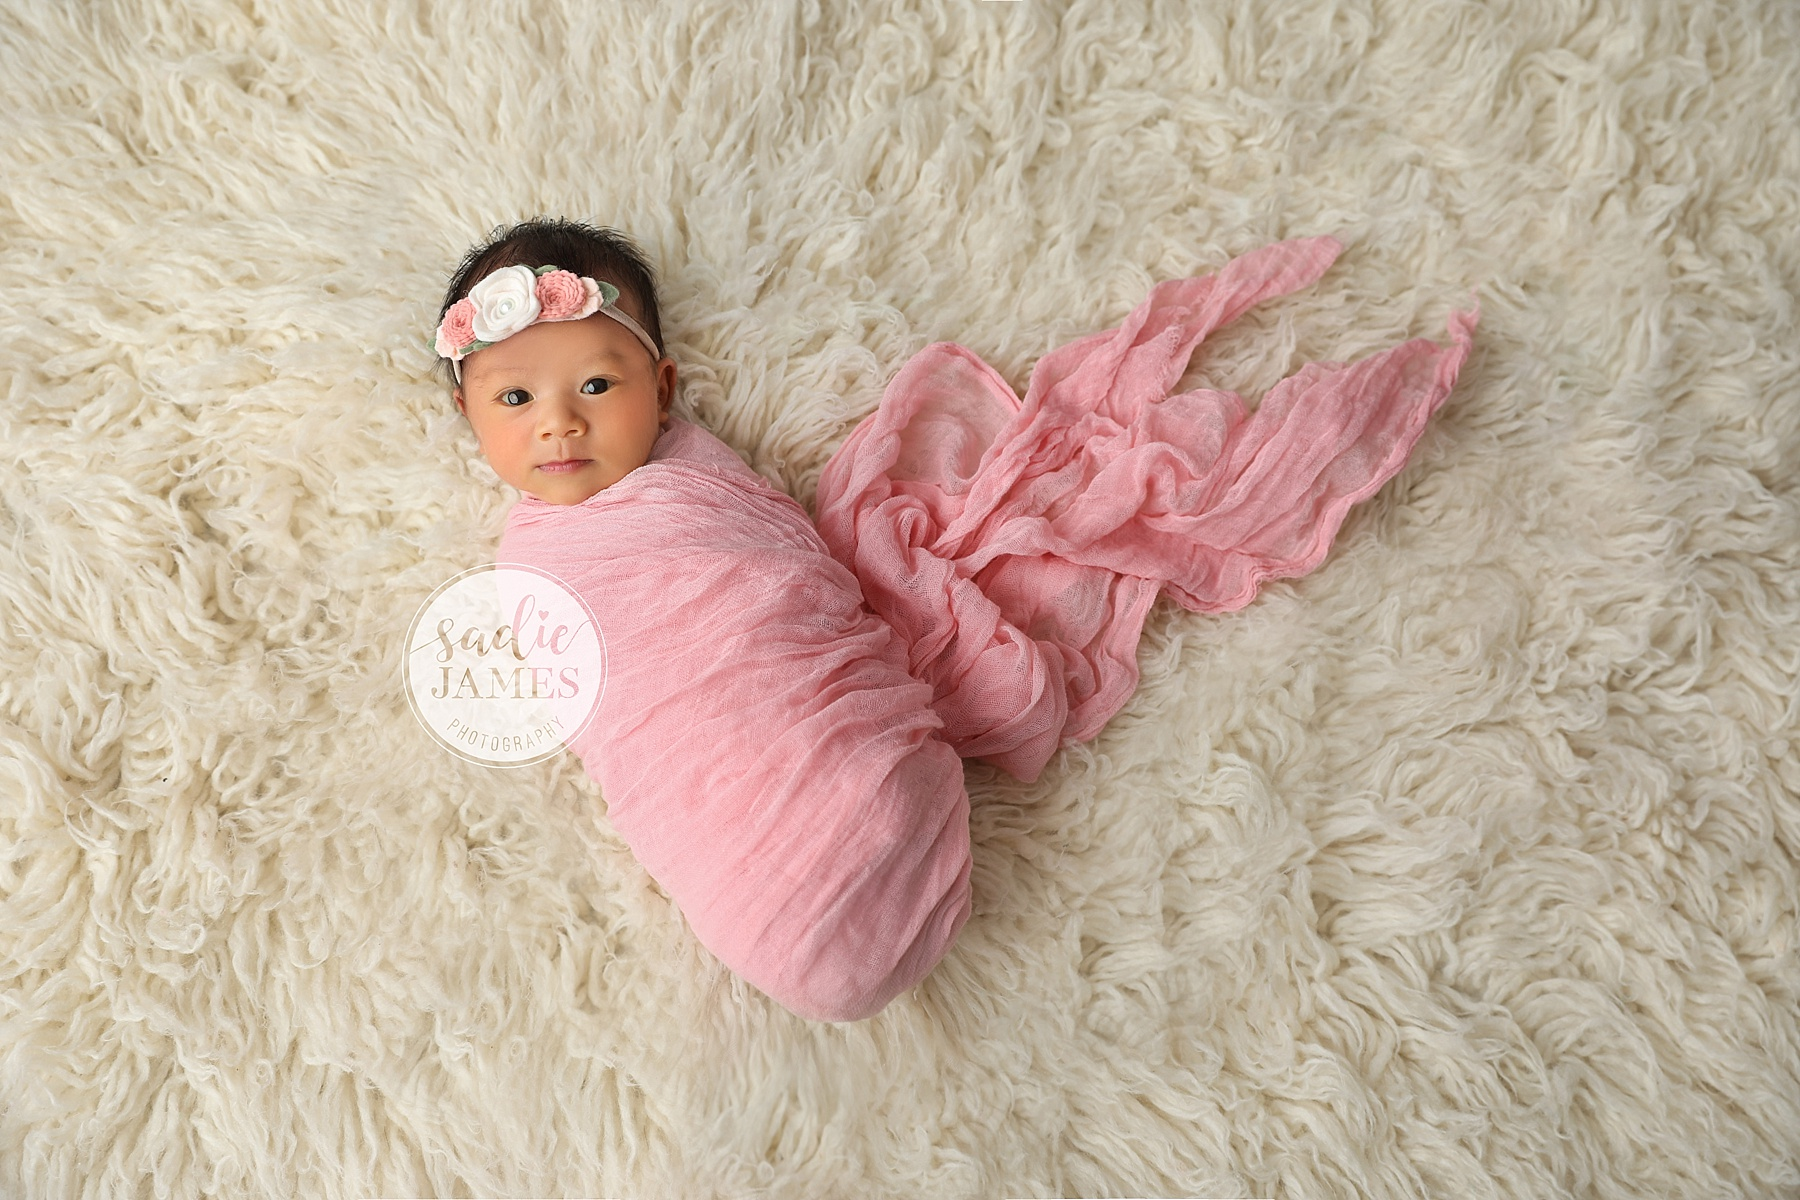 Sadie James Photography | CA newborn photographer | Orange County CA newborn photographer | Orange County newborn photographer | California newborn photographer | California newborn photographer, newborn baby girl, baby girl newborn photos, newborn portraits, newborn pictures, baby girl photos, newborn baby girl session